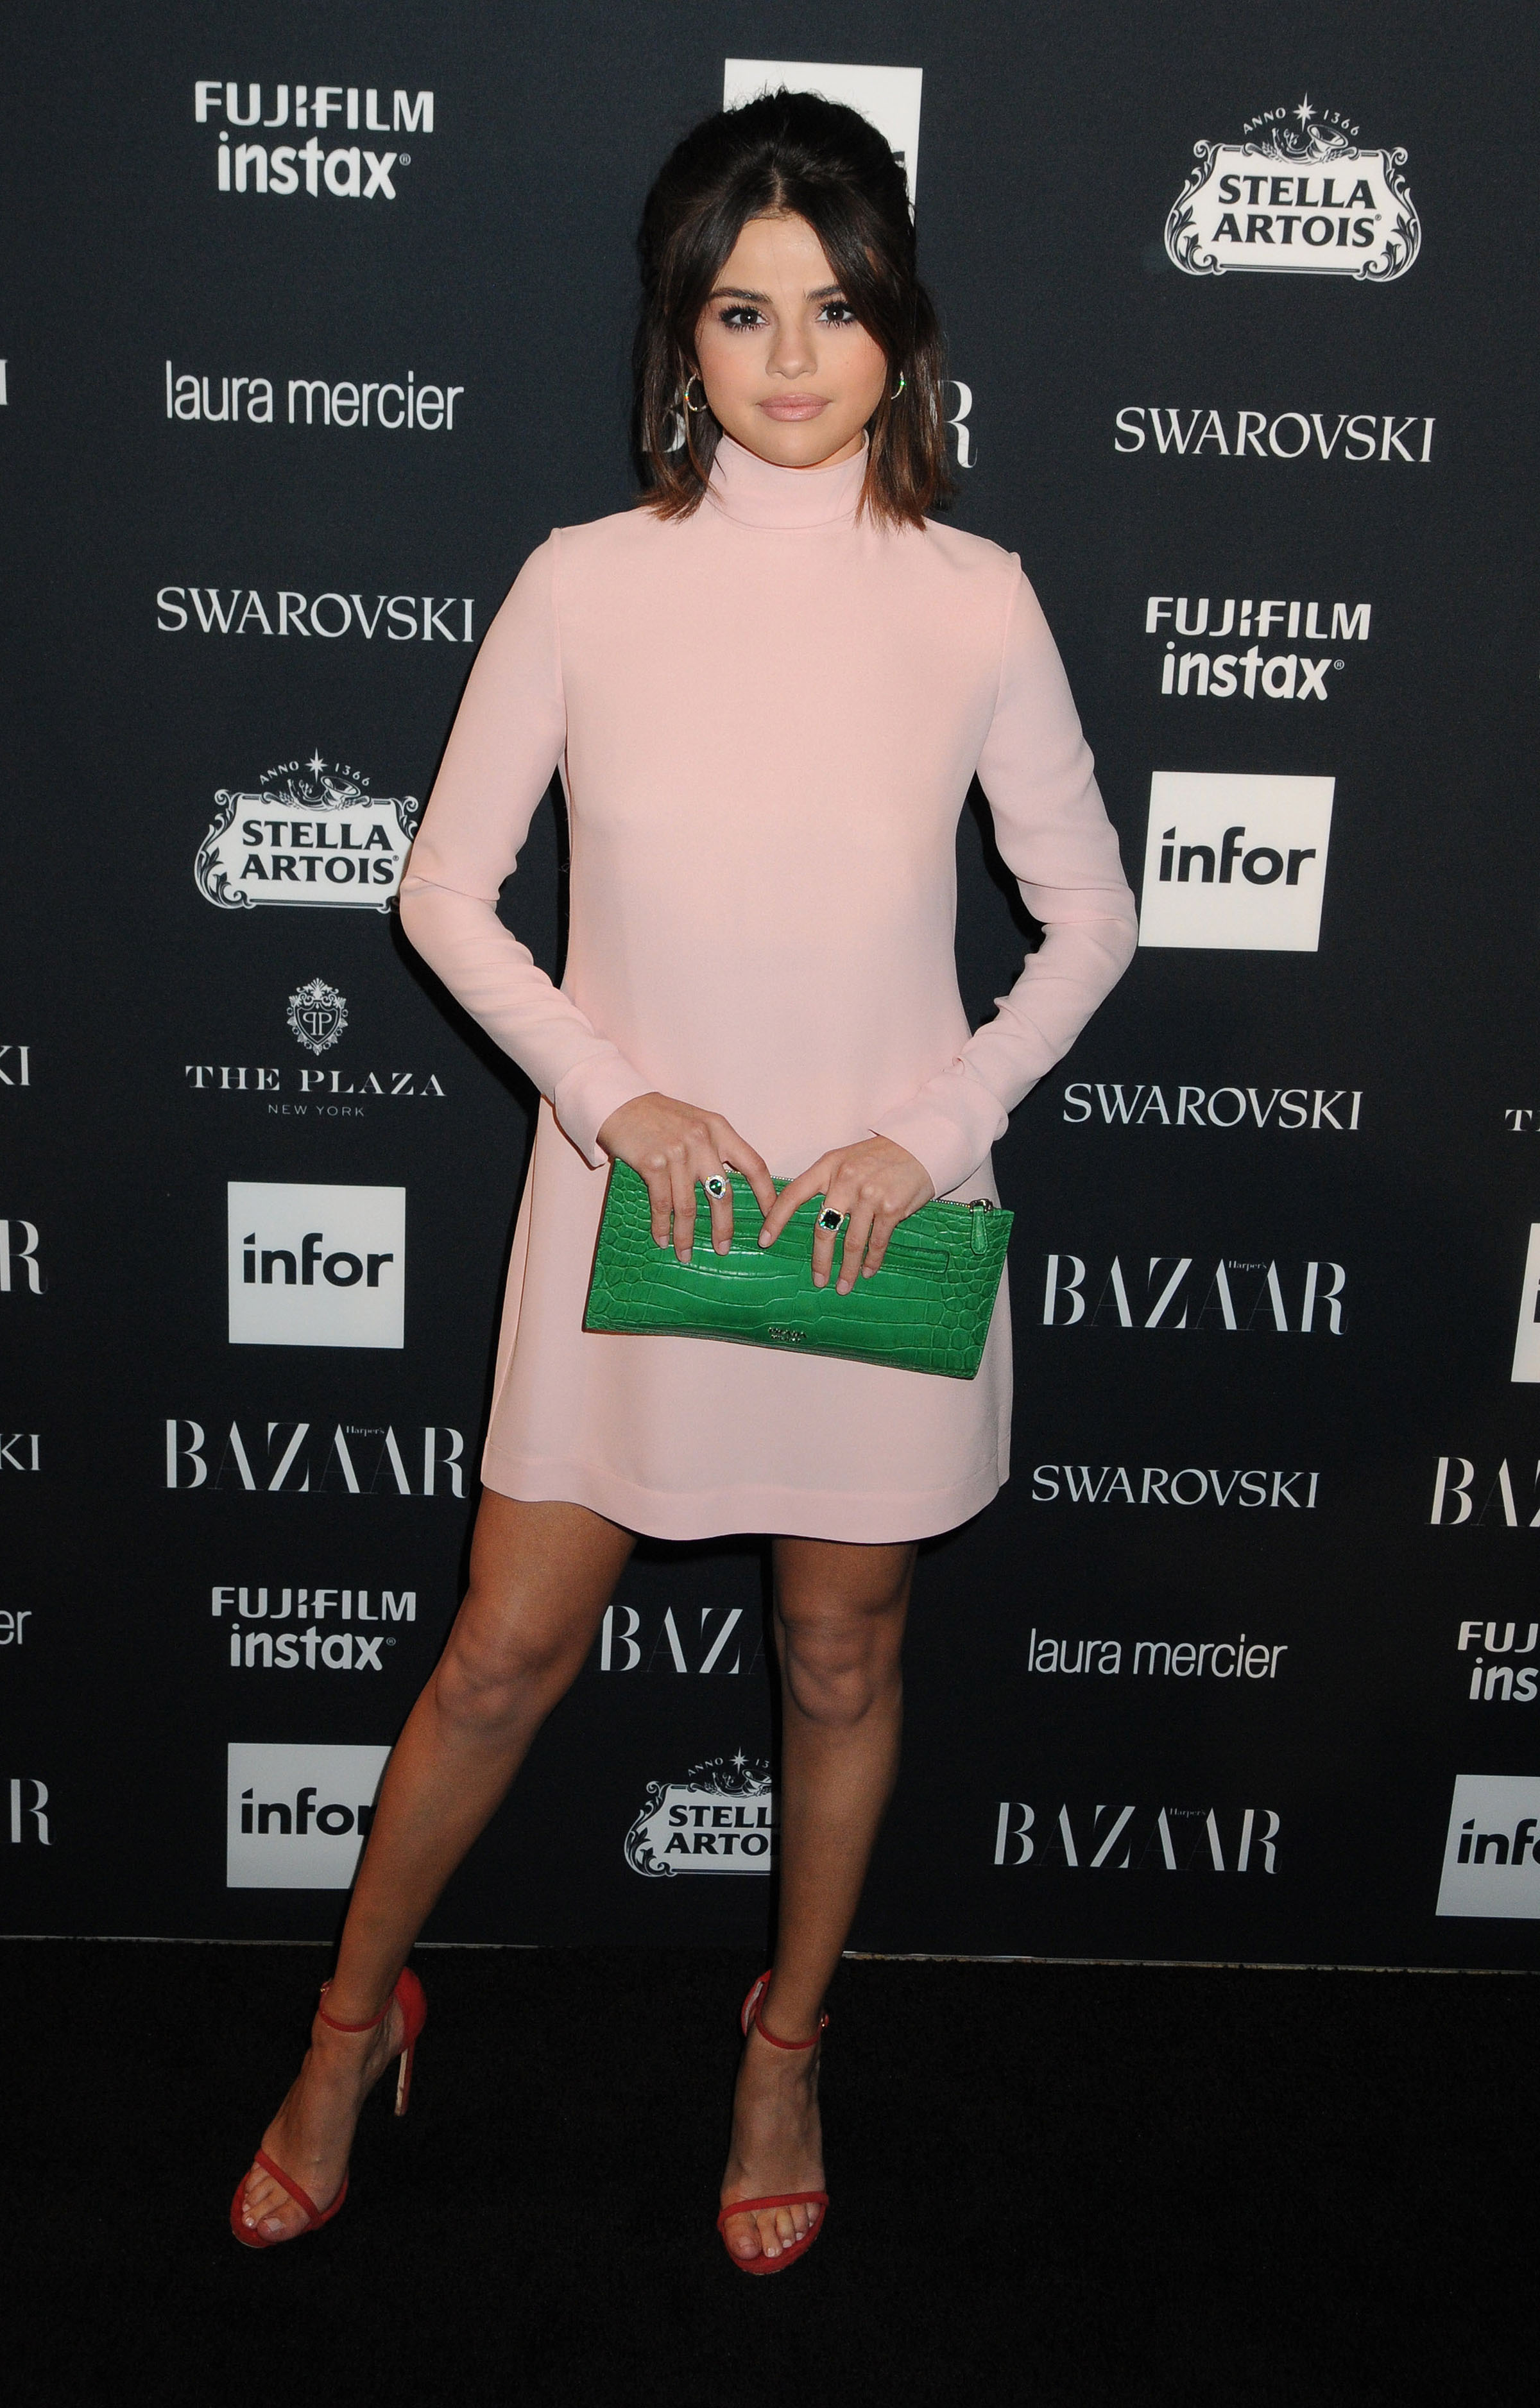 Selena Gomez and The Weeknd arrives to the 2017 Harper's Bazaar Icons - New York <P> Pictured: Selena Gomez <B>Ref: SPL1572867  080917  </B><BR/> Picture by: Johns PkI / Splash News<BR/> </P><P> <B>Splash News and Pictures</B><BR/> Los Angeles:310-821-2666<BR/> New York:212-619-2666<BR/> London:870-934-2666<BR/> <span id=